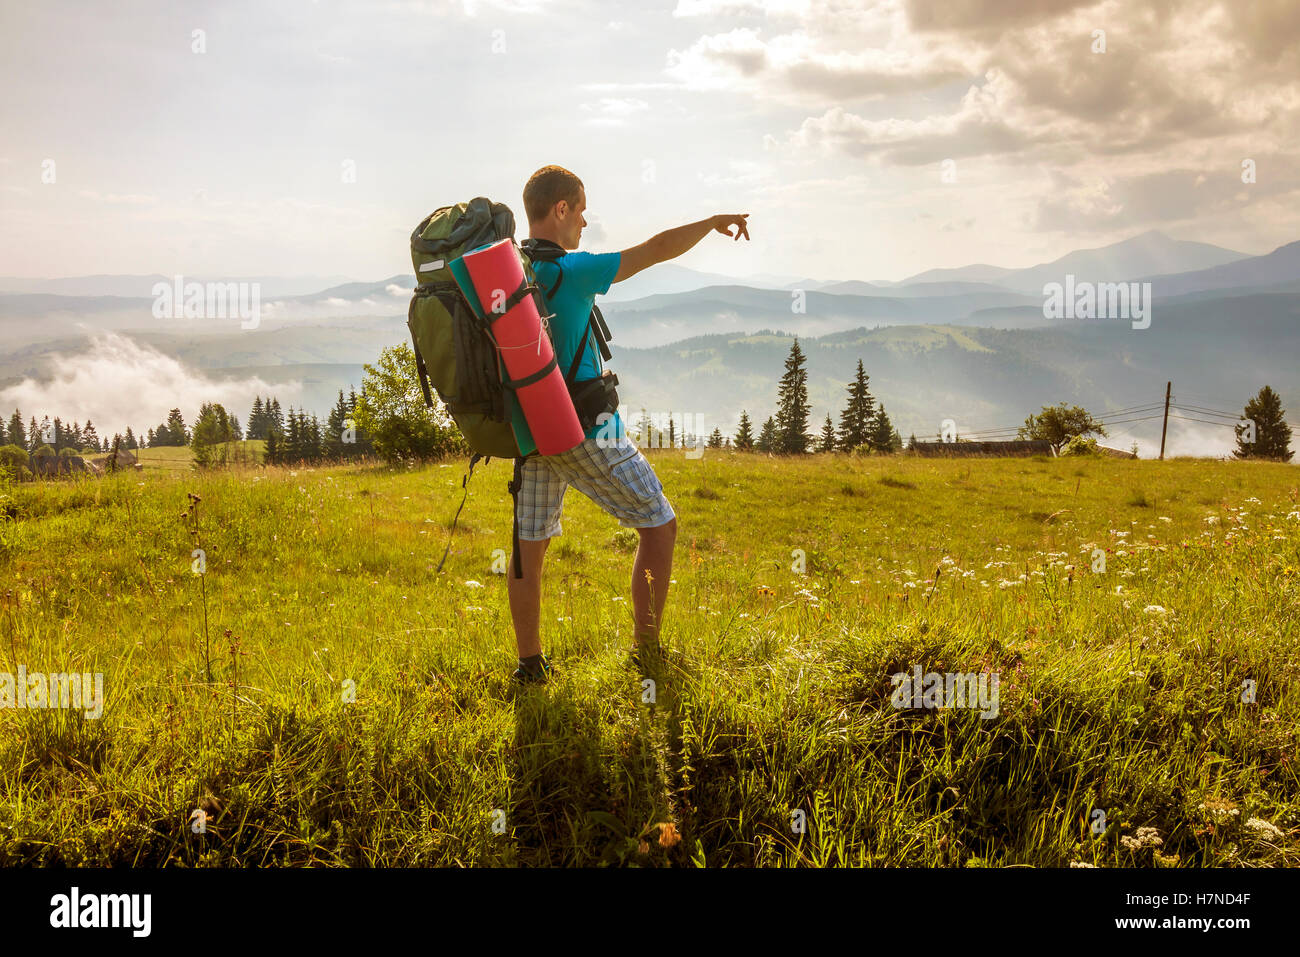 Hiker with a backpack standing in mountains Stock Photo